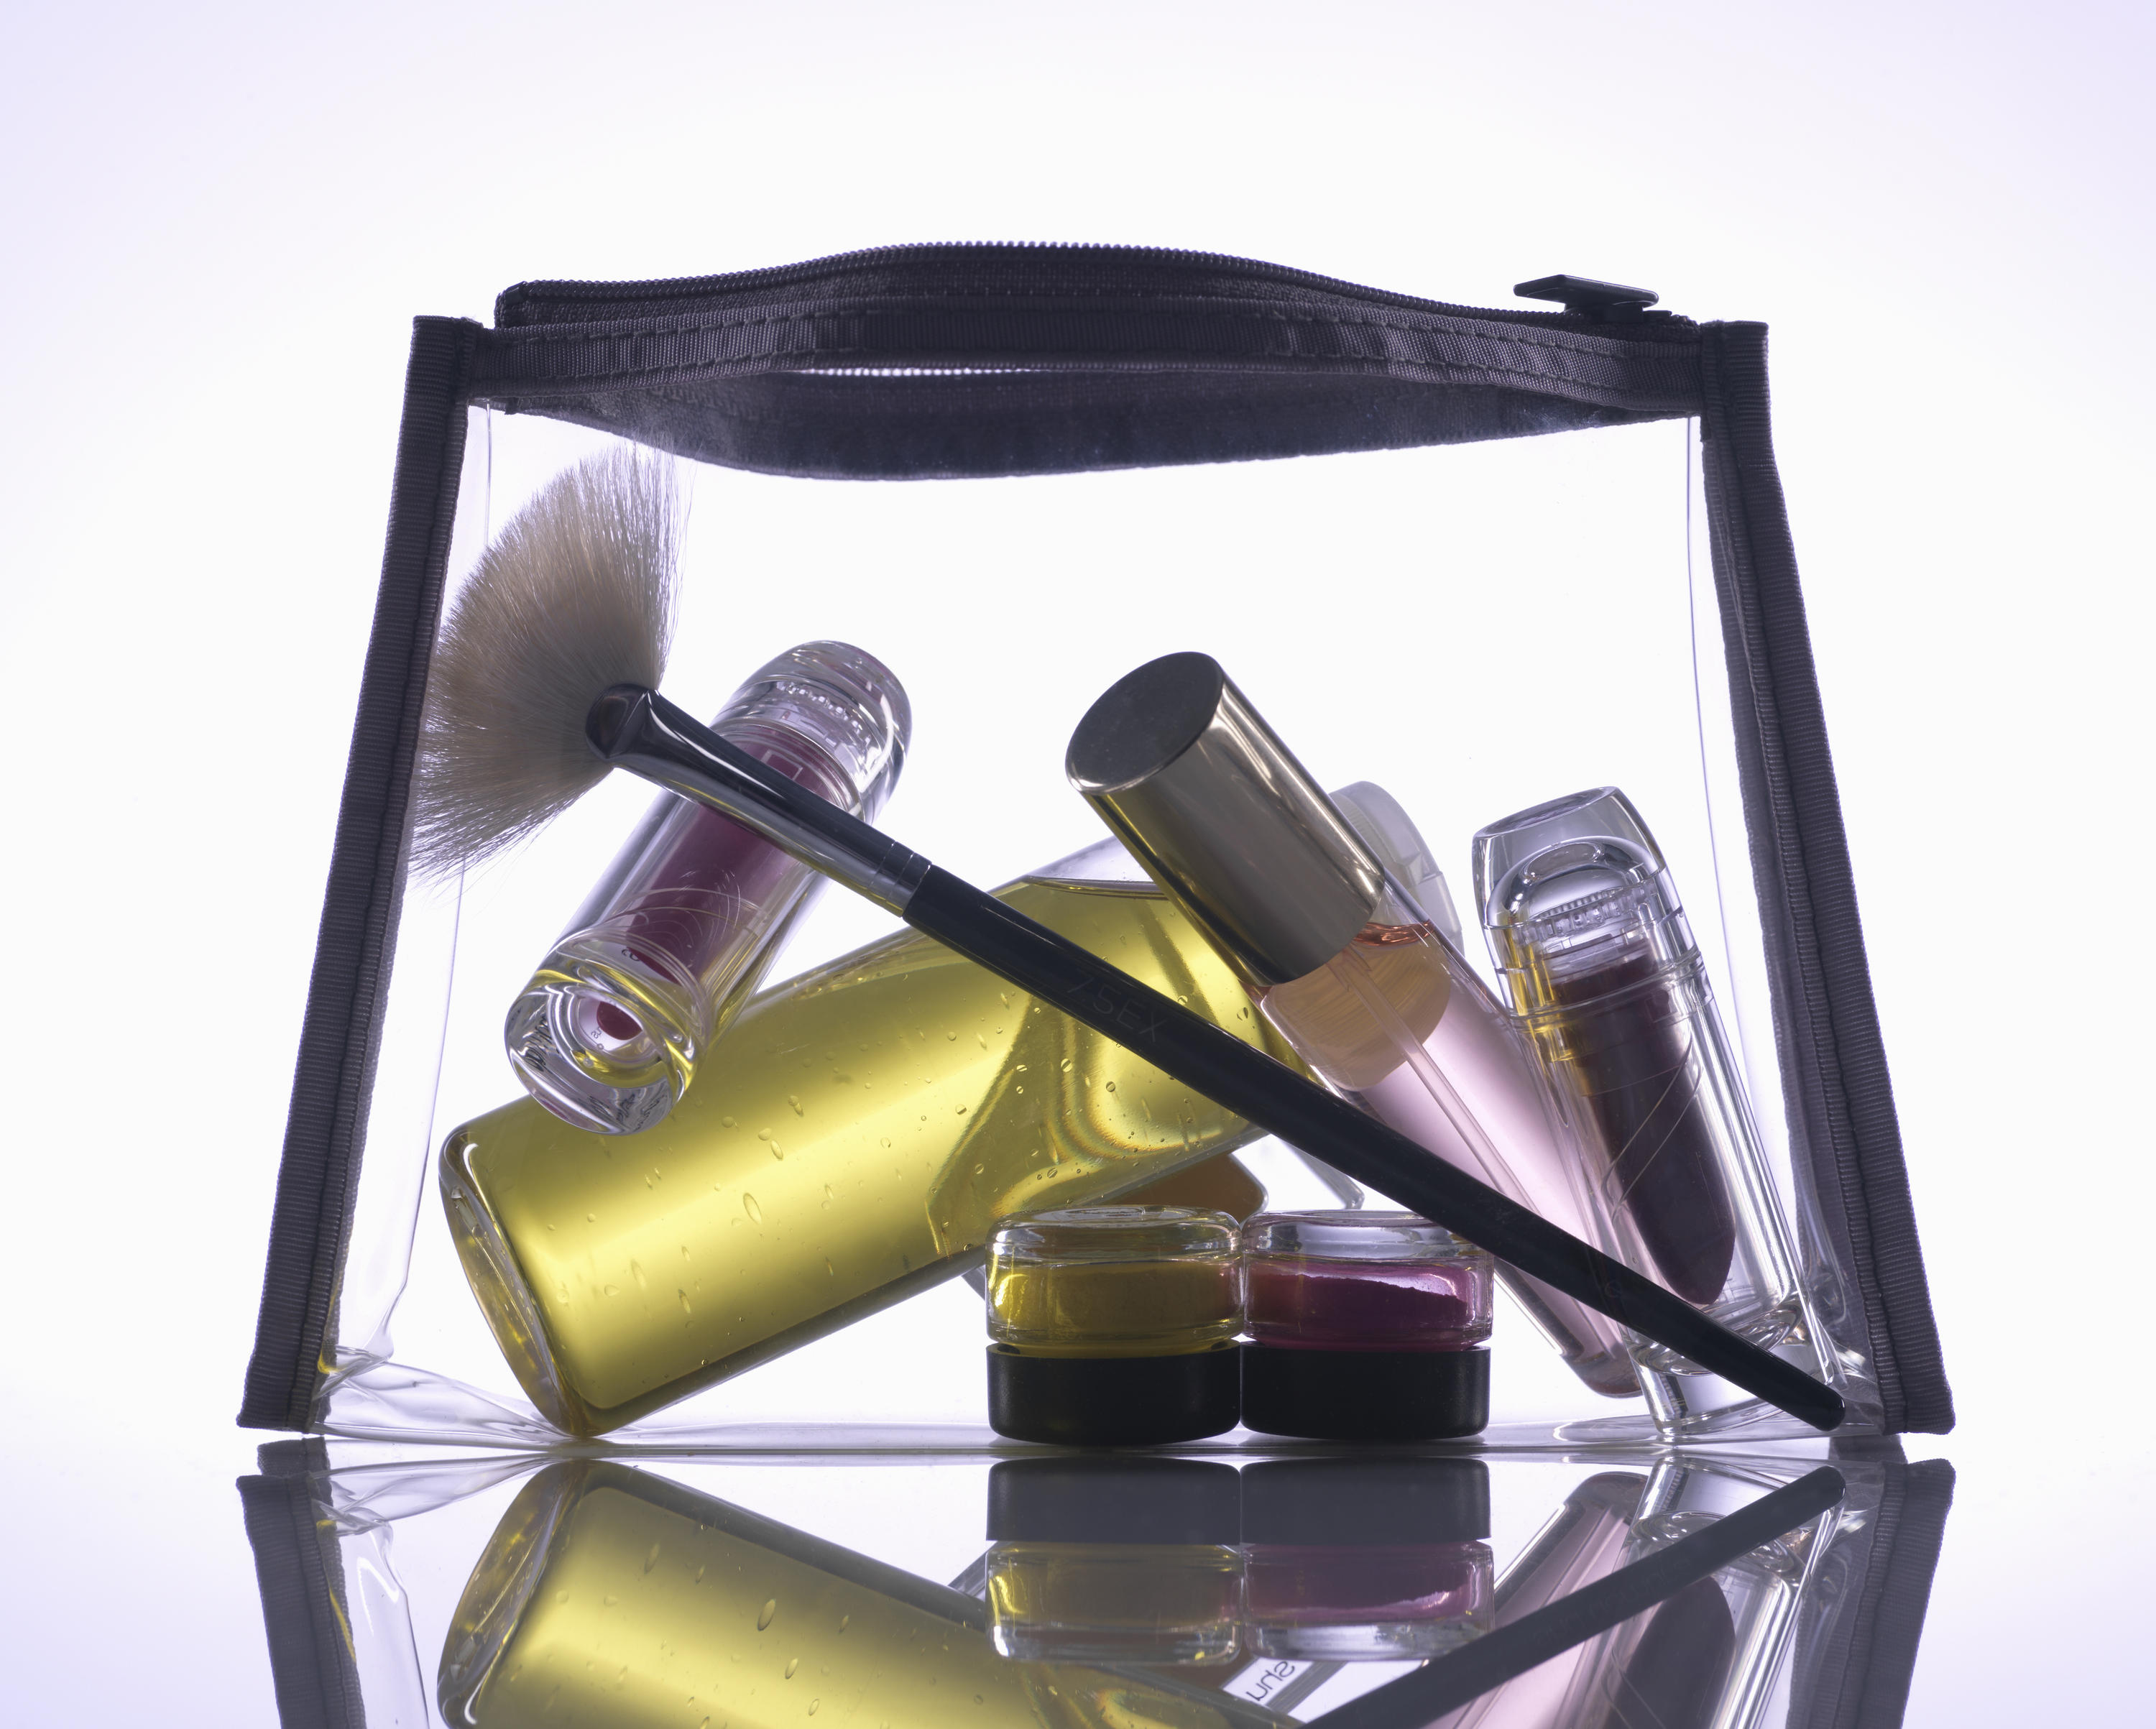 You must have them! Cosmetics that help you save time